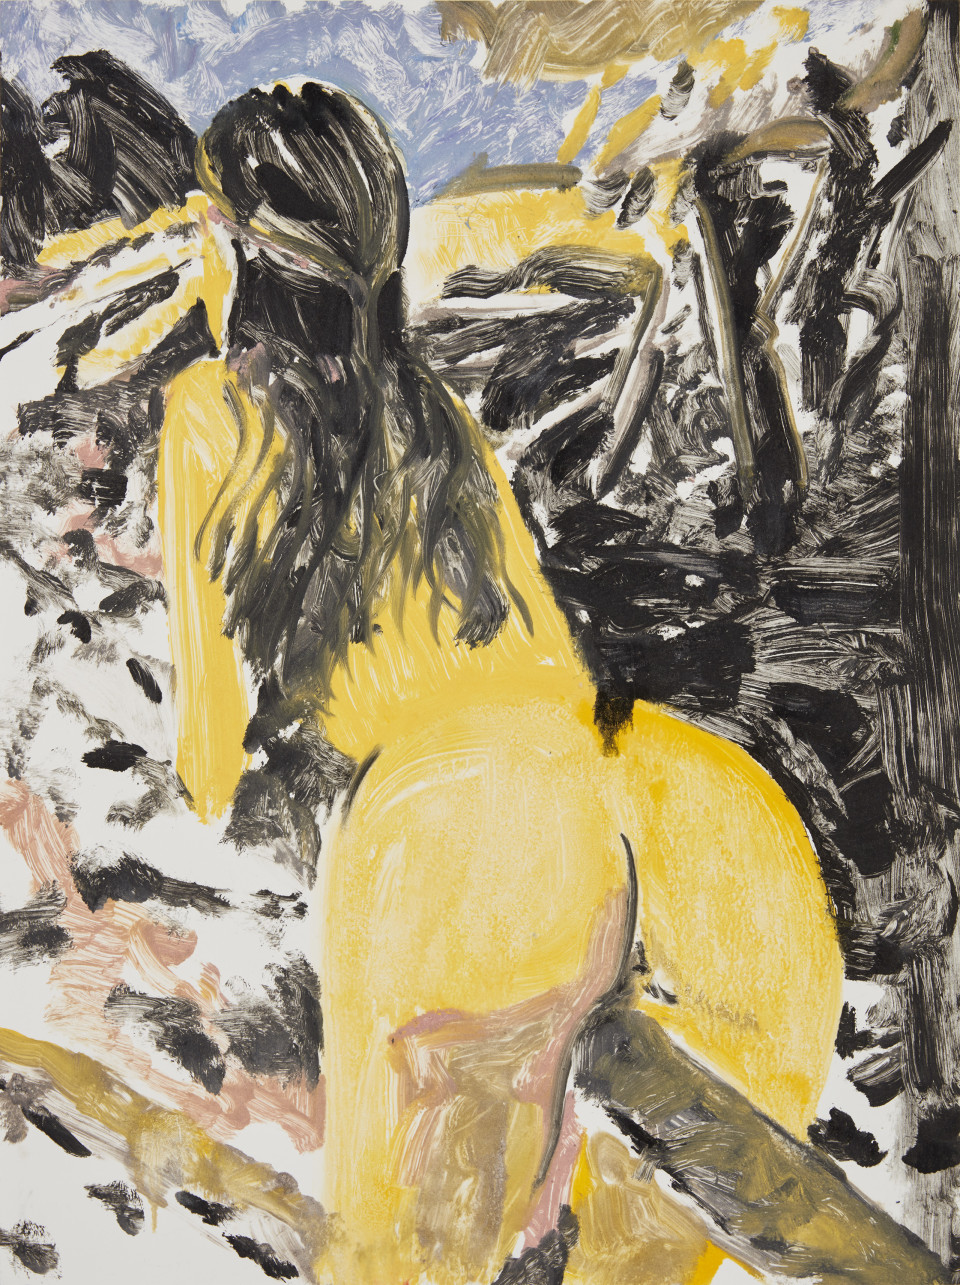 Nicole Wittenberg Back to Nature (Study 2), 2015 Monotype on Paper 60.3 x 45.1 cm 23 3/4 x 17 3/4 in